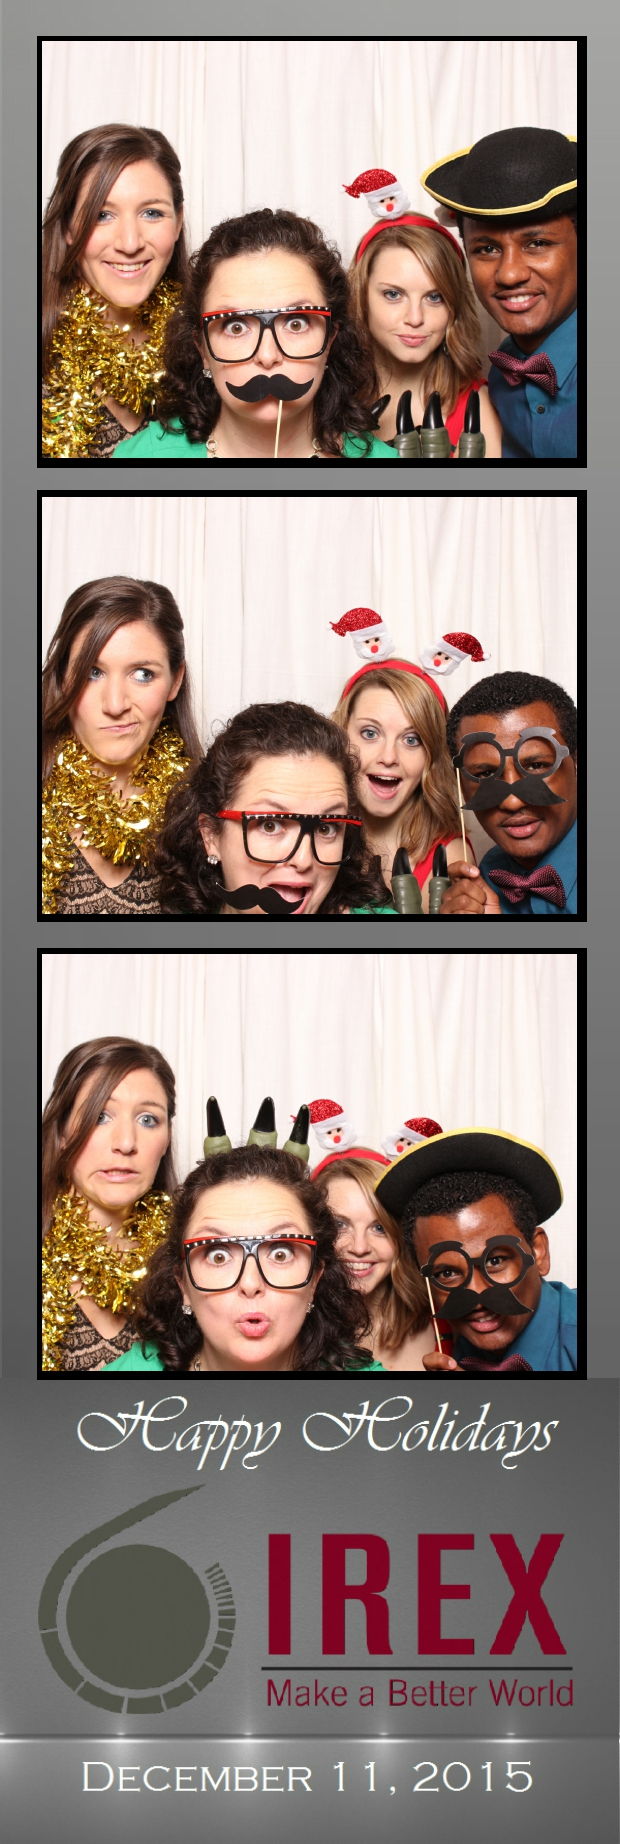 Guest House Events Photo Booth Strips IREX (41).jpg